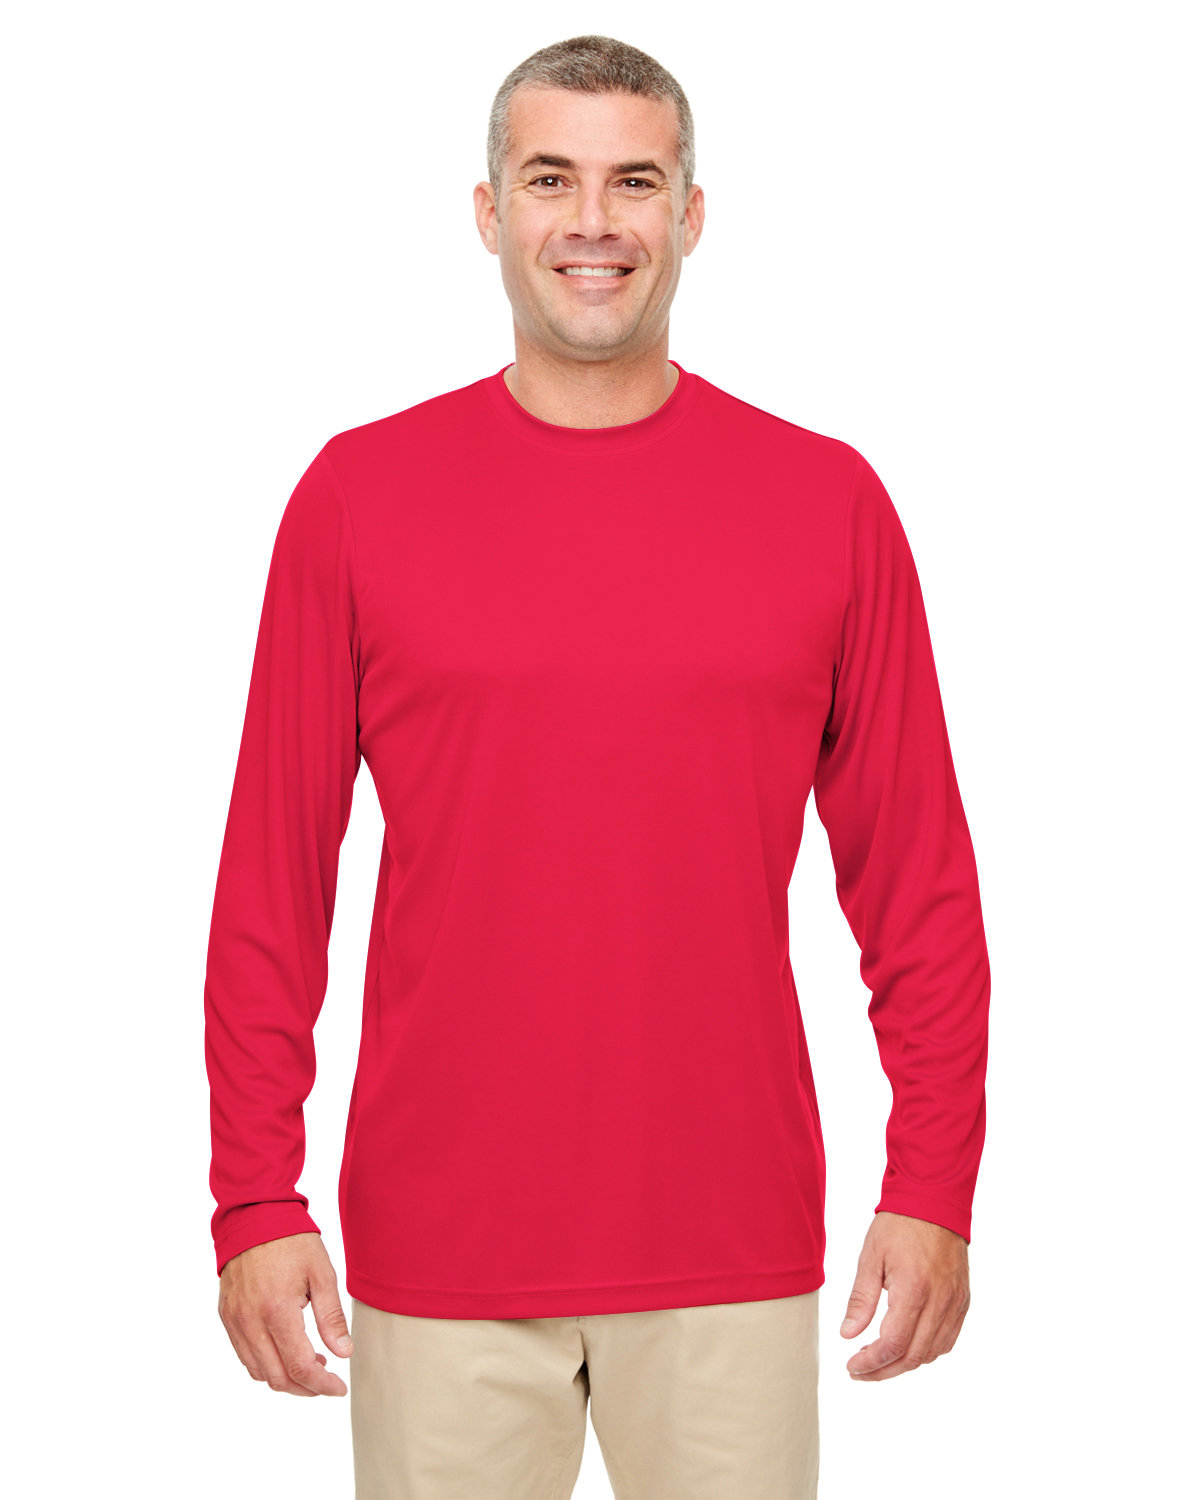 UltraClub Men's Cool & Dry Performance Long-Sleeve Top RED